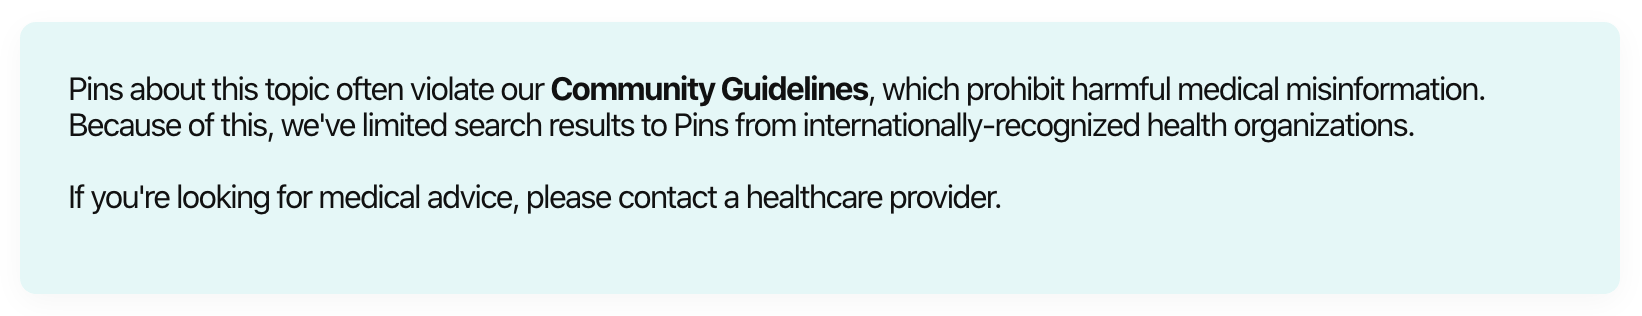 Pinterest's disclaimer about limiting search results for Coronavirus